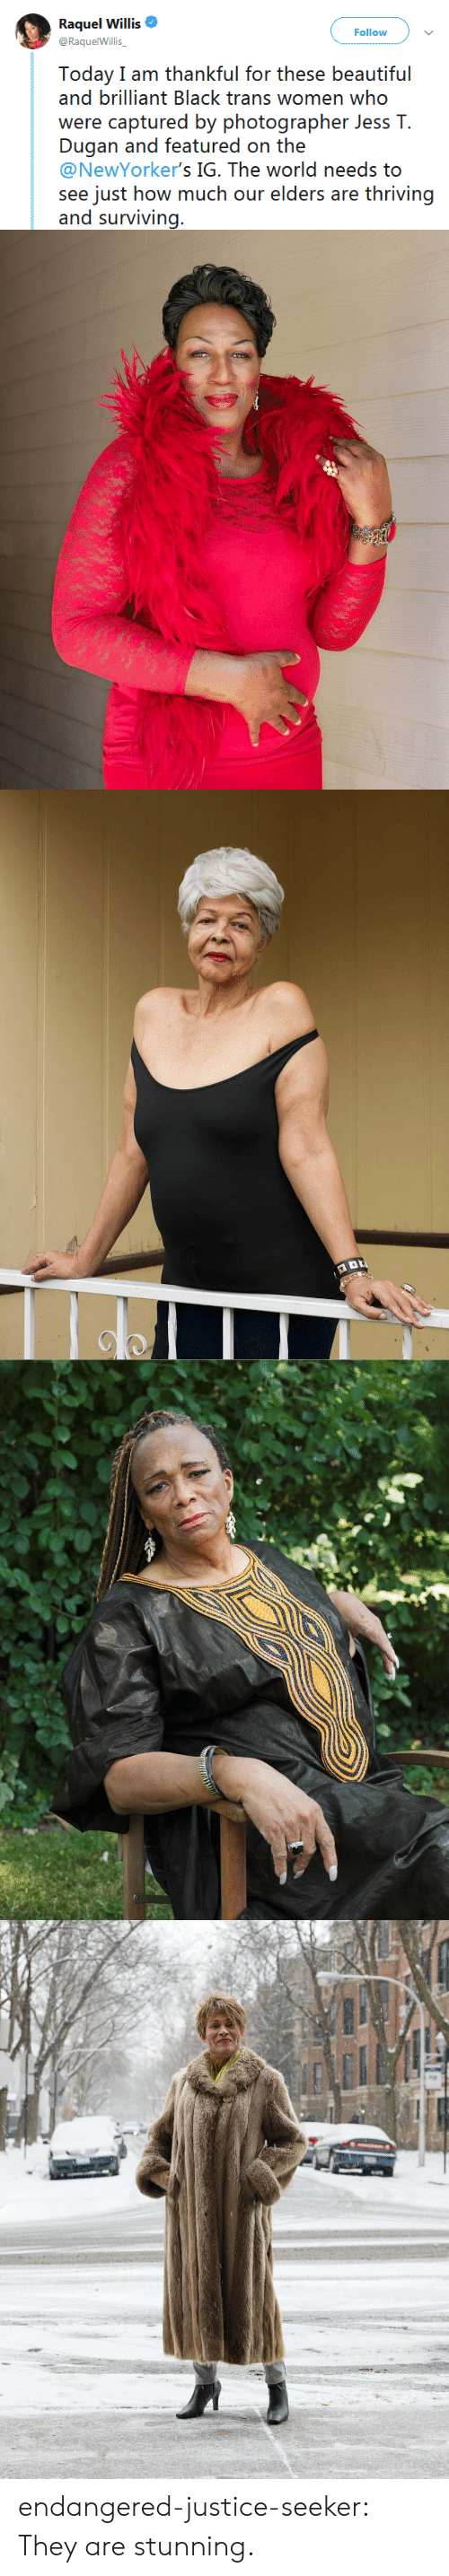 willis: Raquel Willis  @RaquelWillis  Follow  Today I am thankful for these beautiful  and brilliant Black trans women who  were (ipiured by phot(grapher Joss l.  Dugan and featured on the  @NewYorker's IG. The world needs to  see just how much our elders are thriving  and surviving. endangered-justice-seeker:  They are stunning.